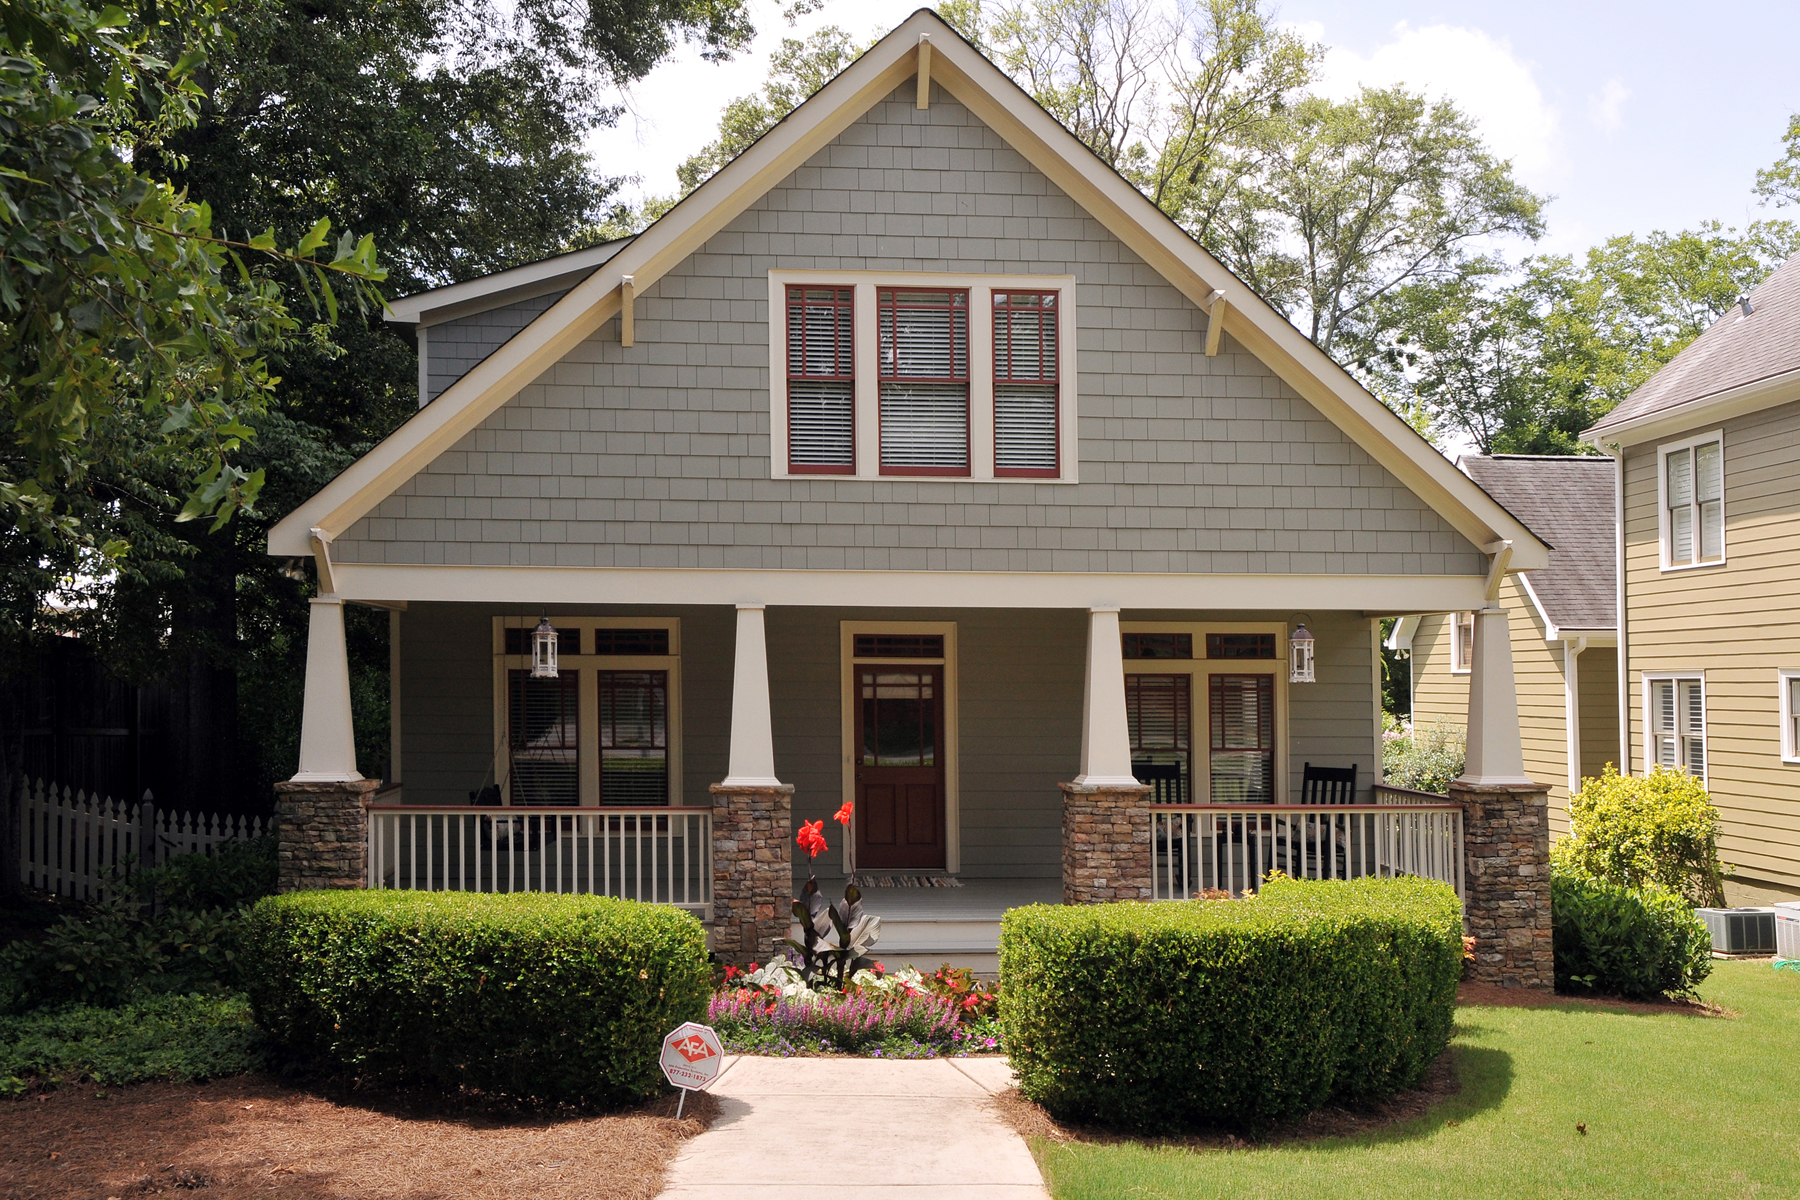 Single Family Home for Active at Charming Craftsman Design 1620 Spring Street Smyrna, Georgia 30080 United States